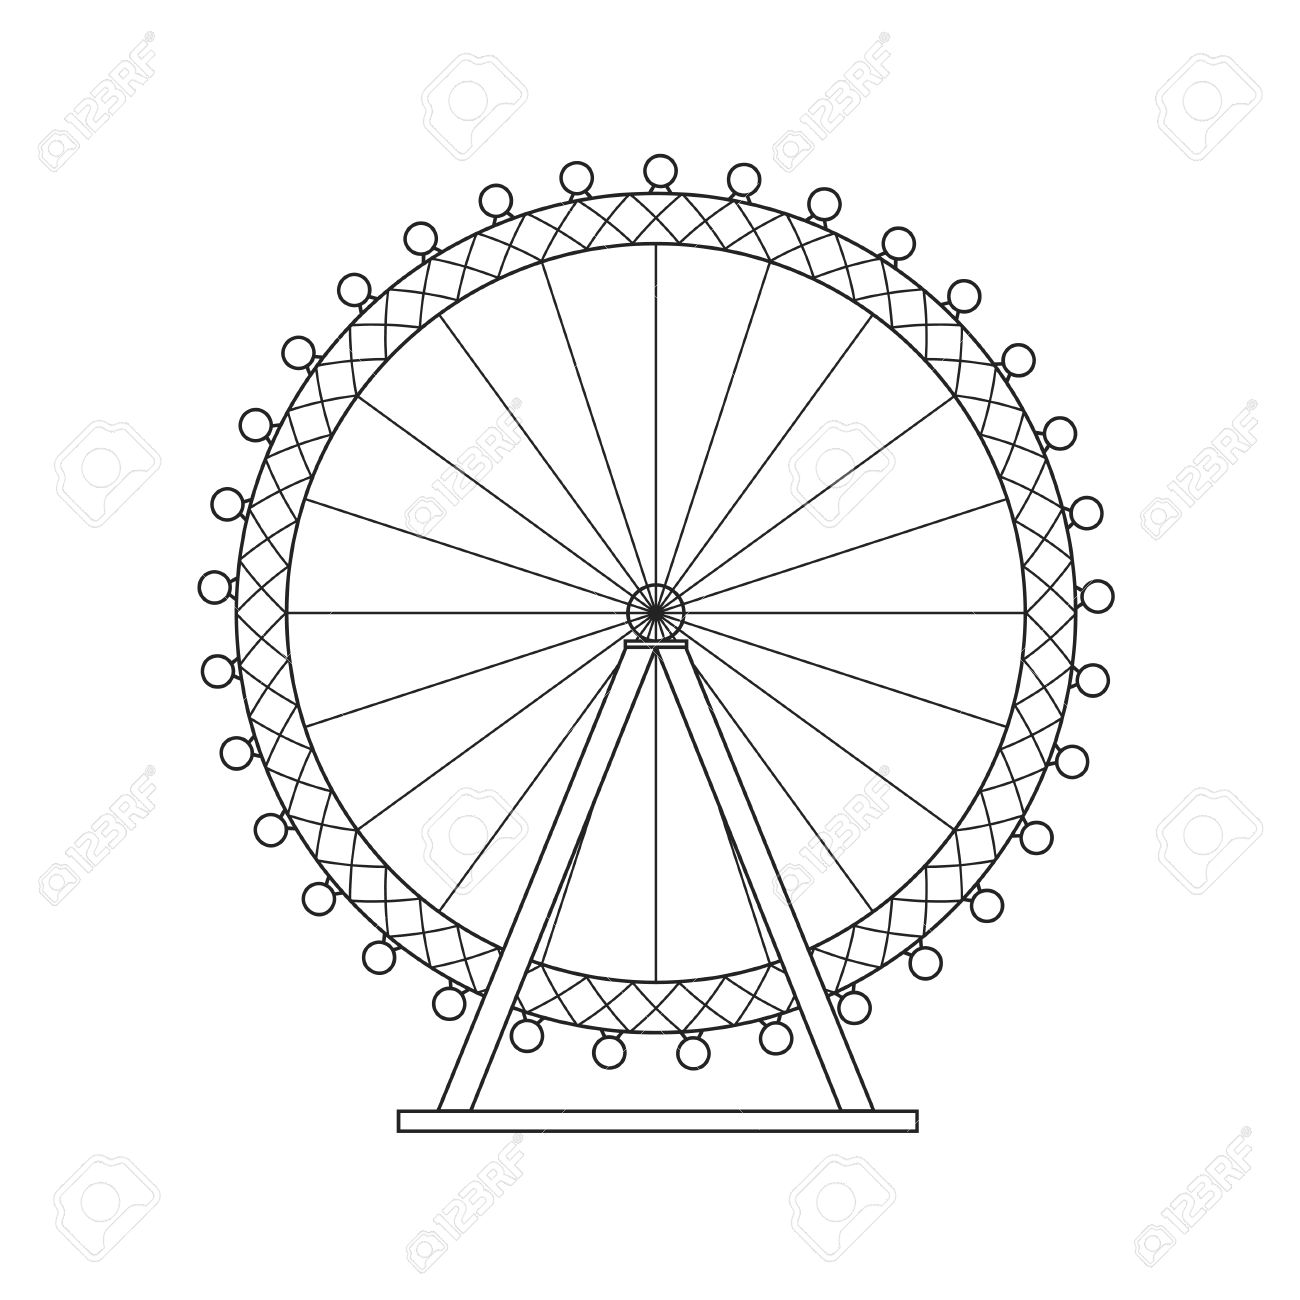 Ferris Wheel London Thin Line Pixel Perfect Art Material Design Royalty Free Cliparts Vectors And Stock Illustration Image 64155674